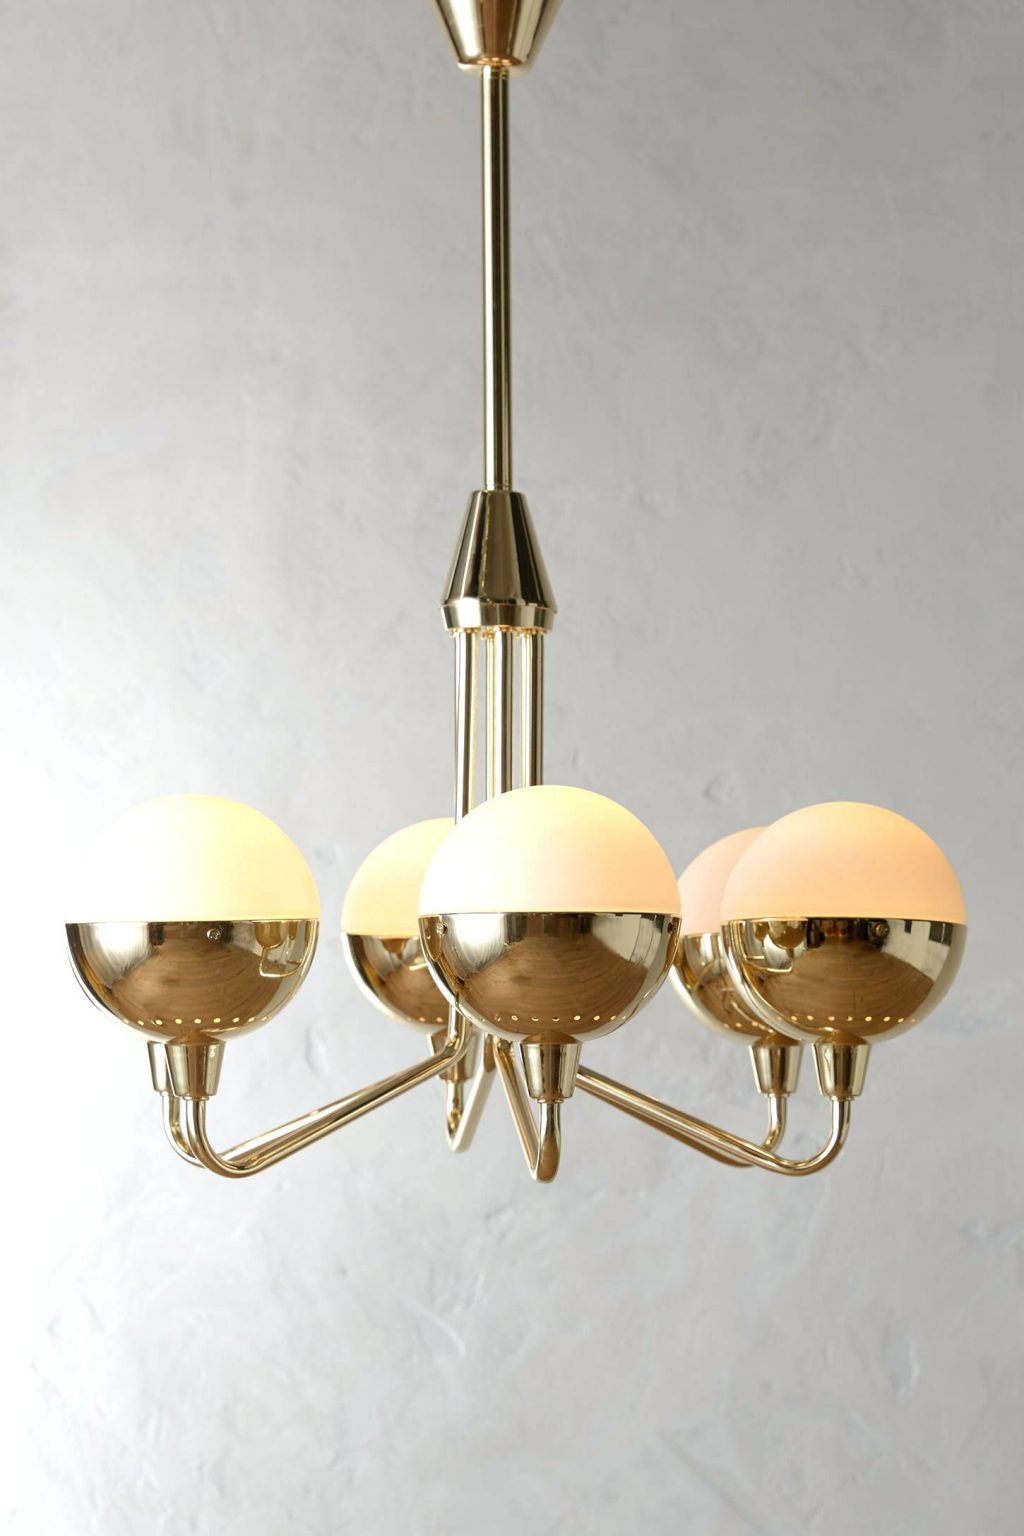 Modern Contemporary Chandelier | West Elm Chandelier | Contemporary Chandeliers on Sale